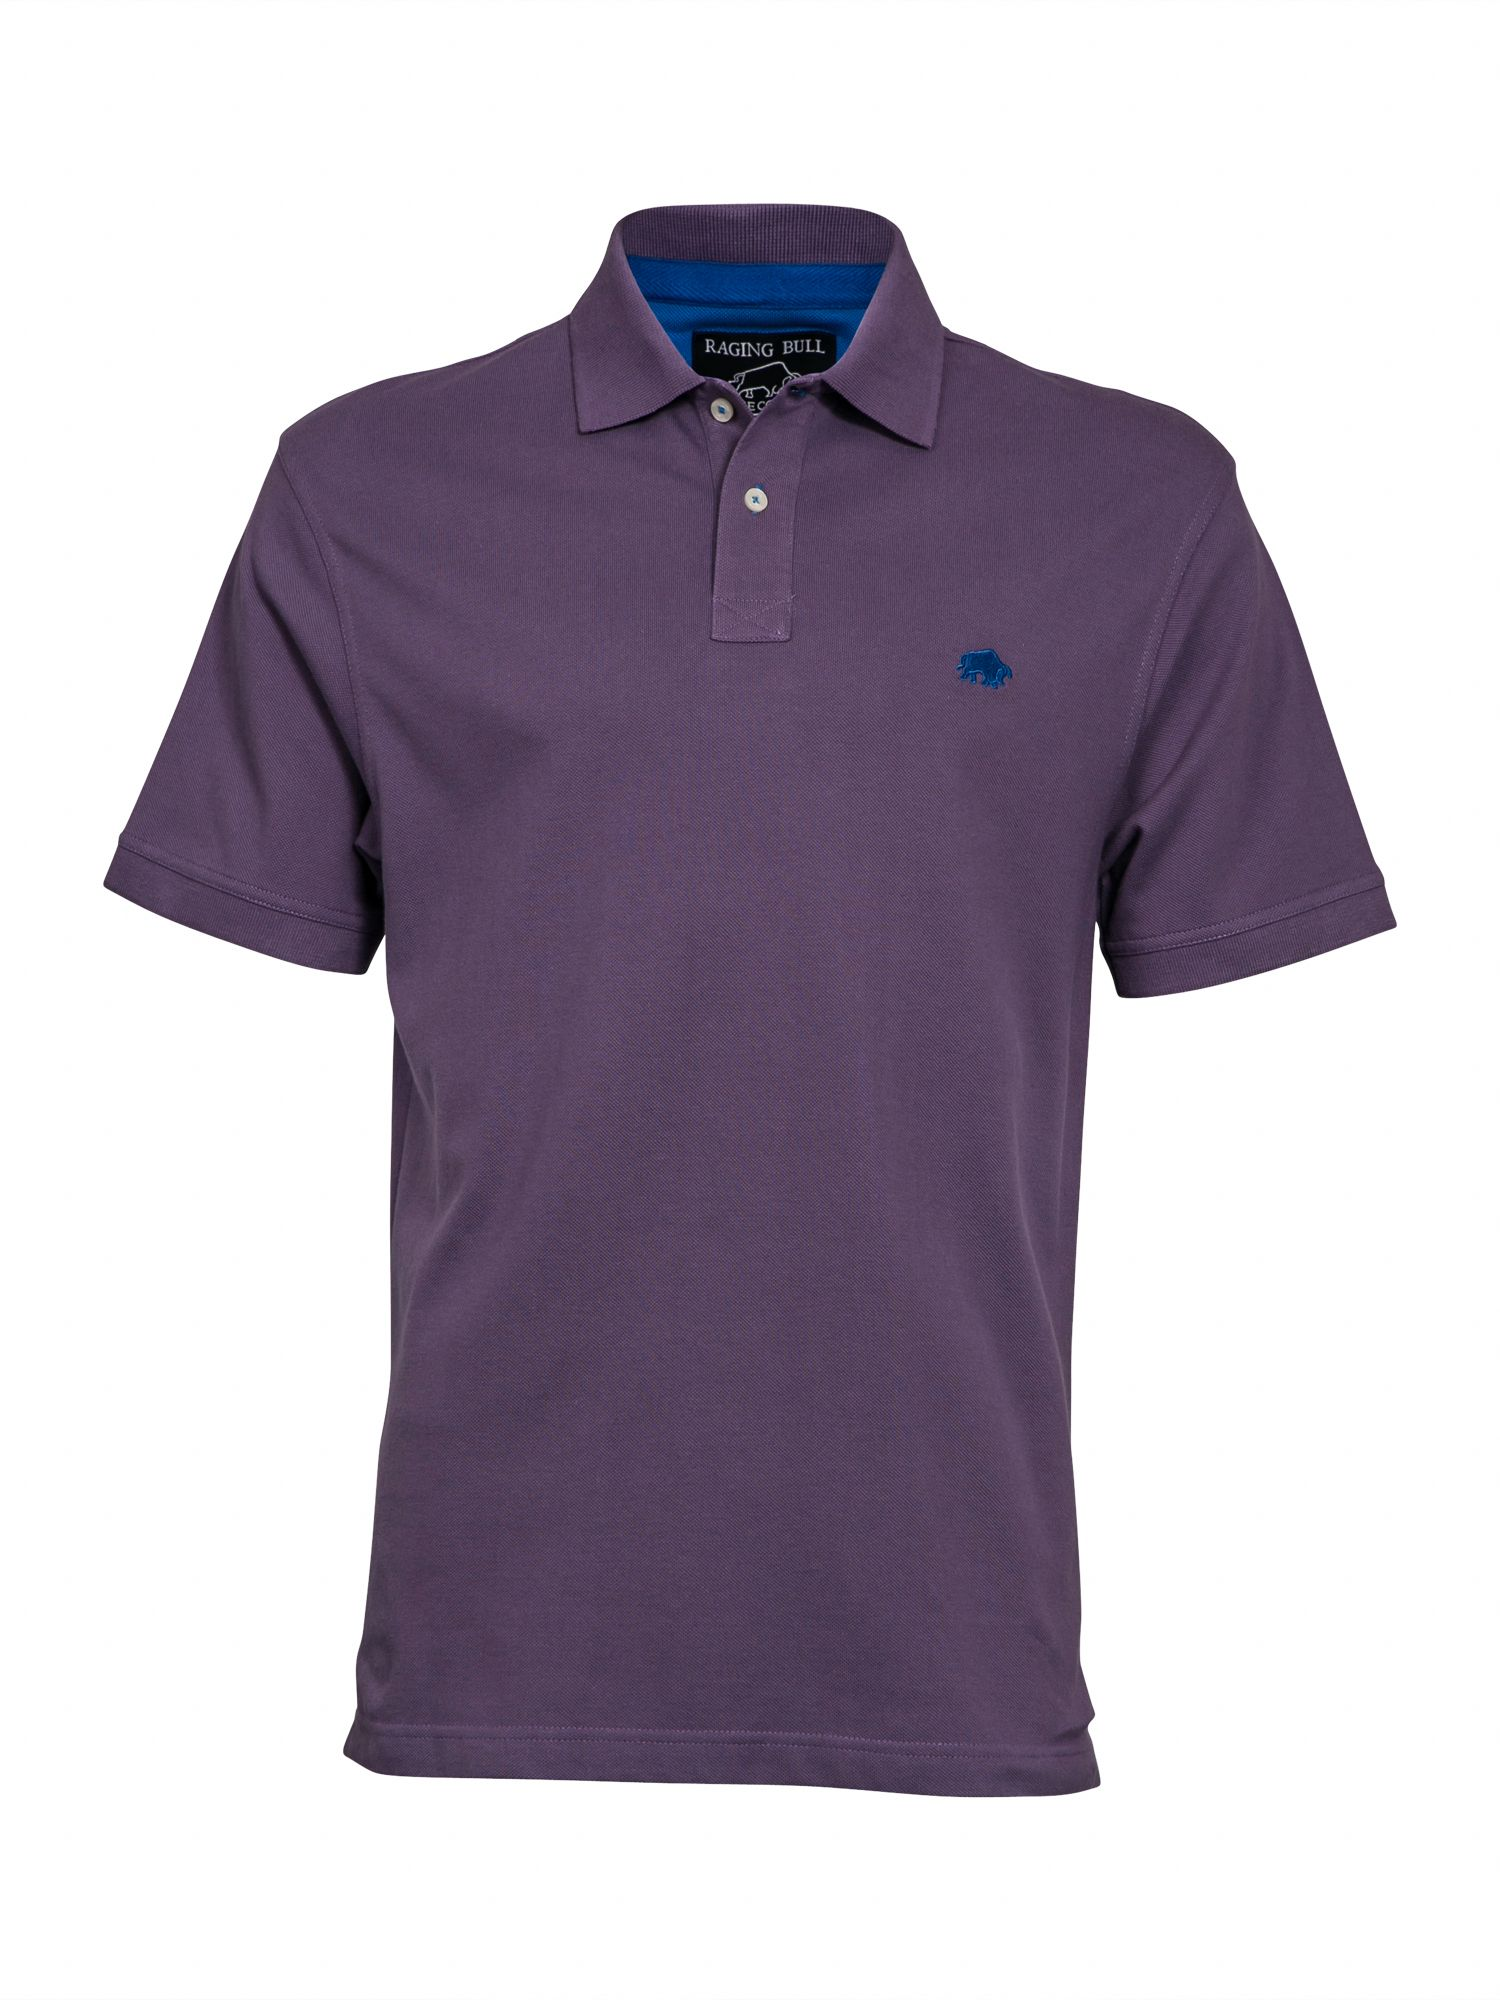 Men's Raging Bull Big and Tall New signature polo shirt, Purple